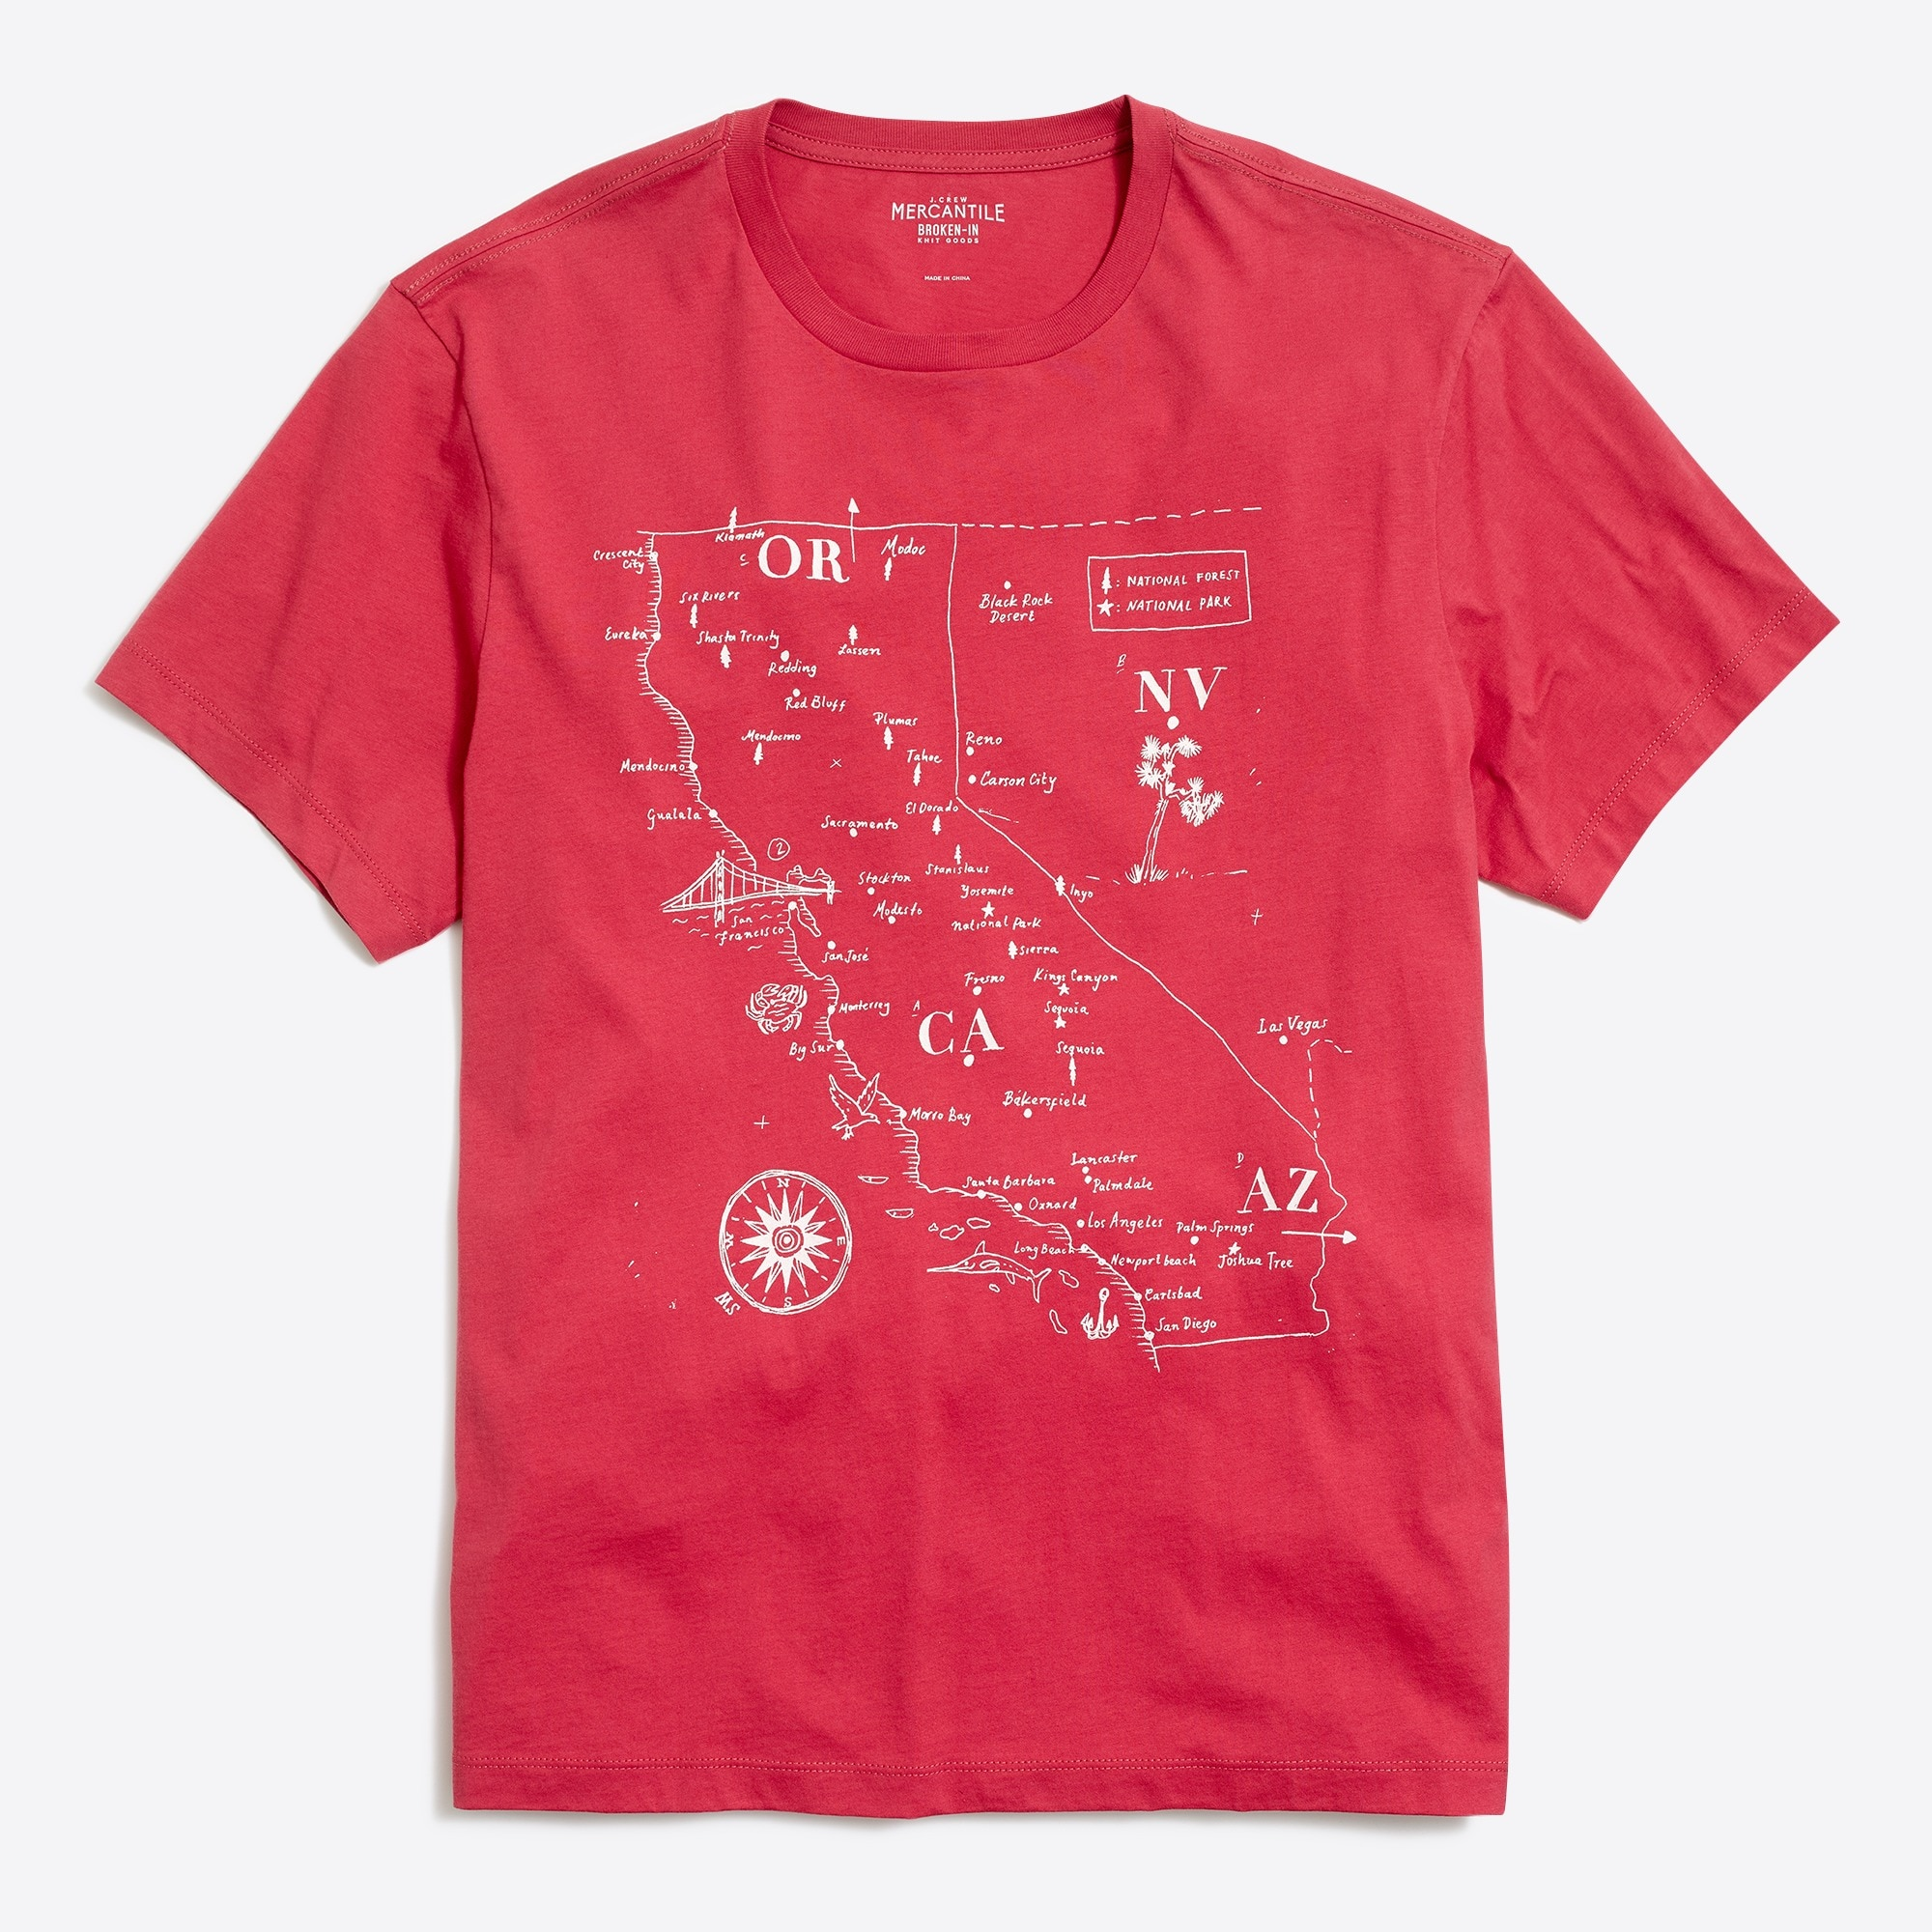 Image 2 for J.Crew Mercantile Broken-in California map T-shirt